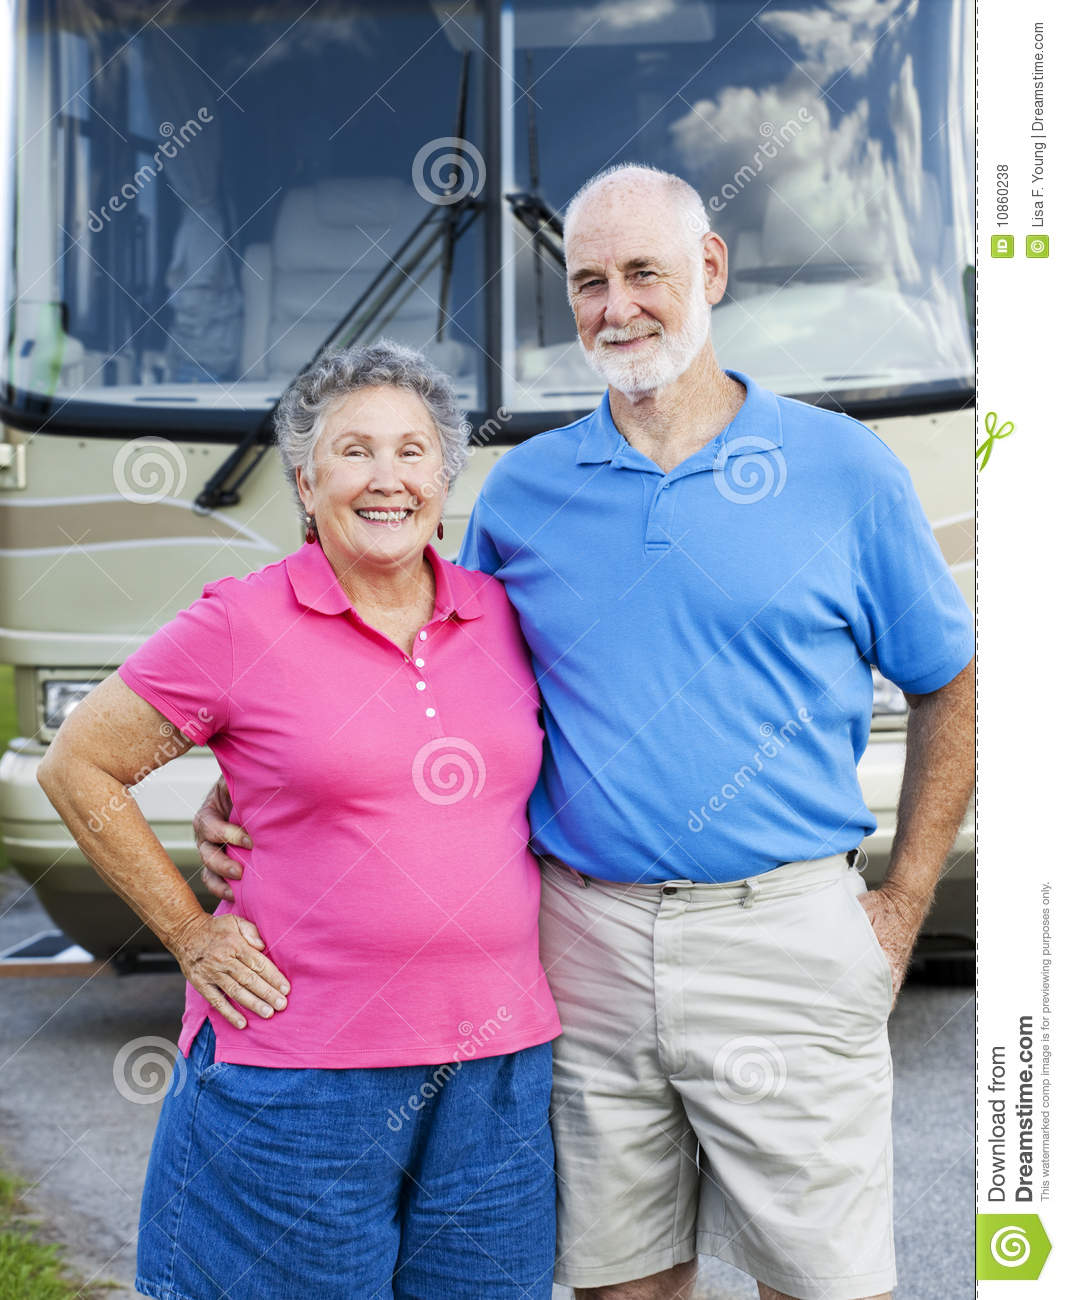 Royalty Free Stock Photos: Happy retired couple isolated